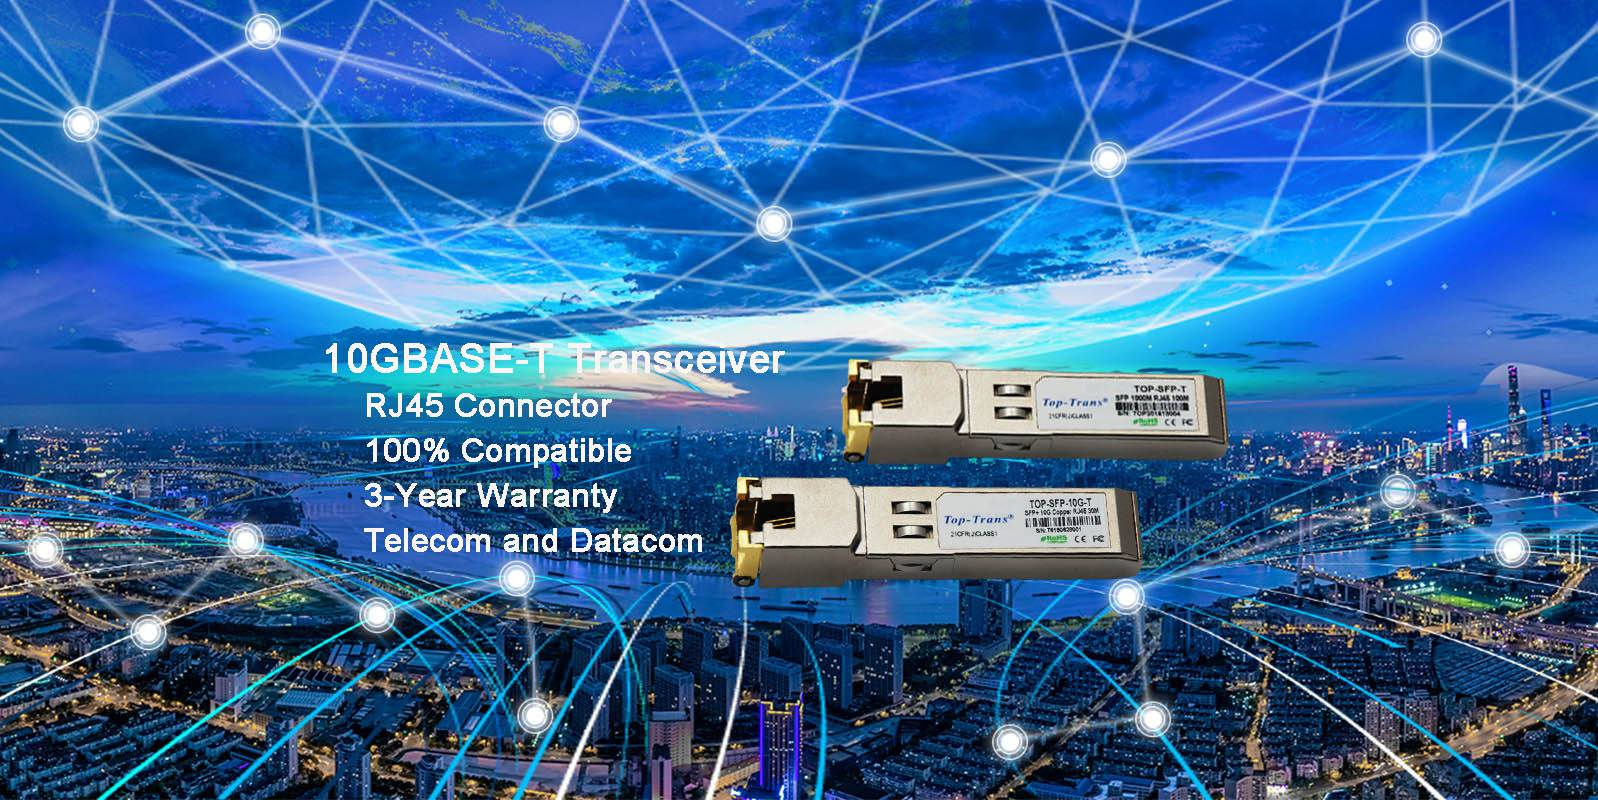 10GBASE-T Transceiver